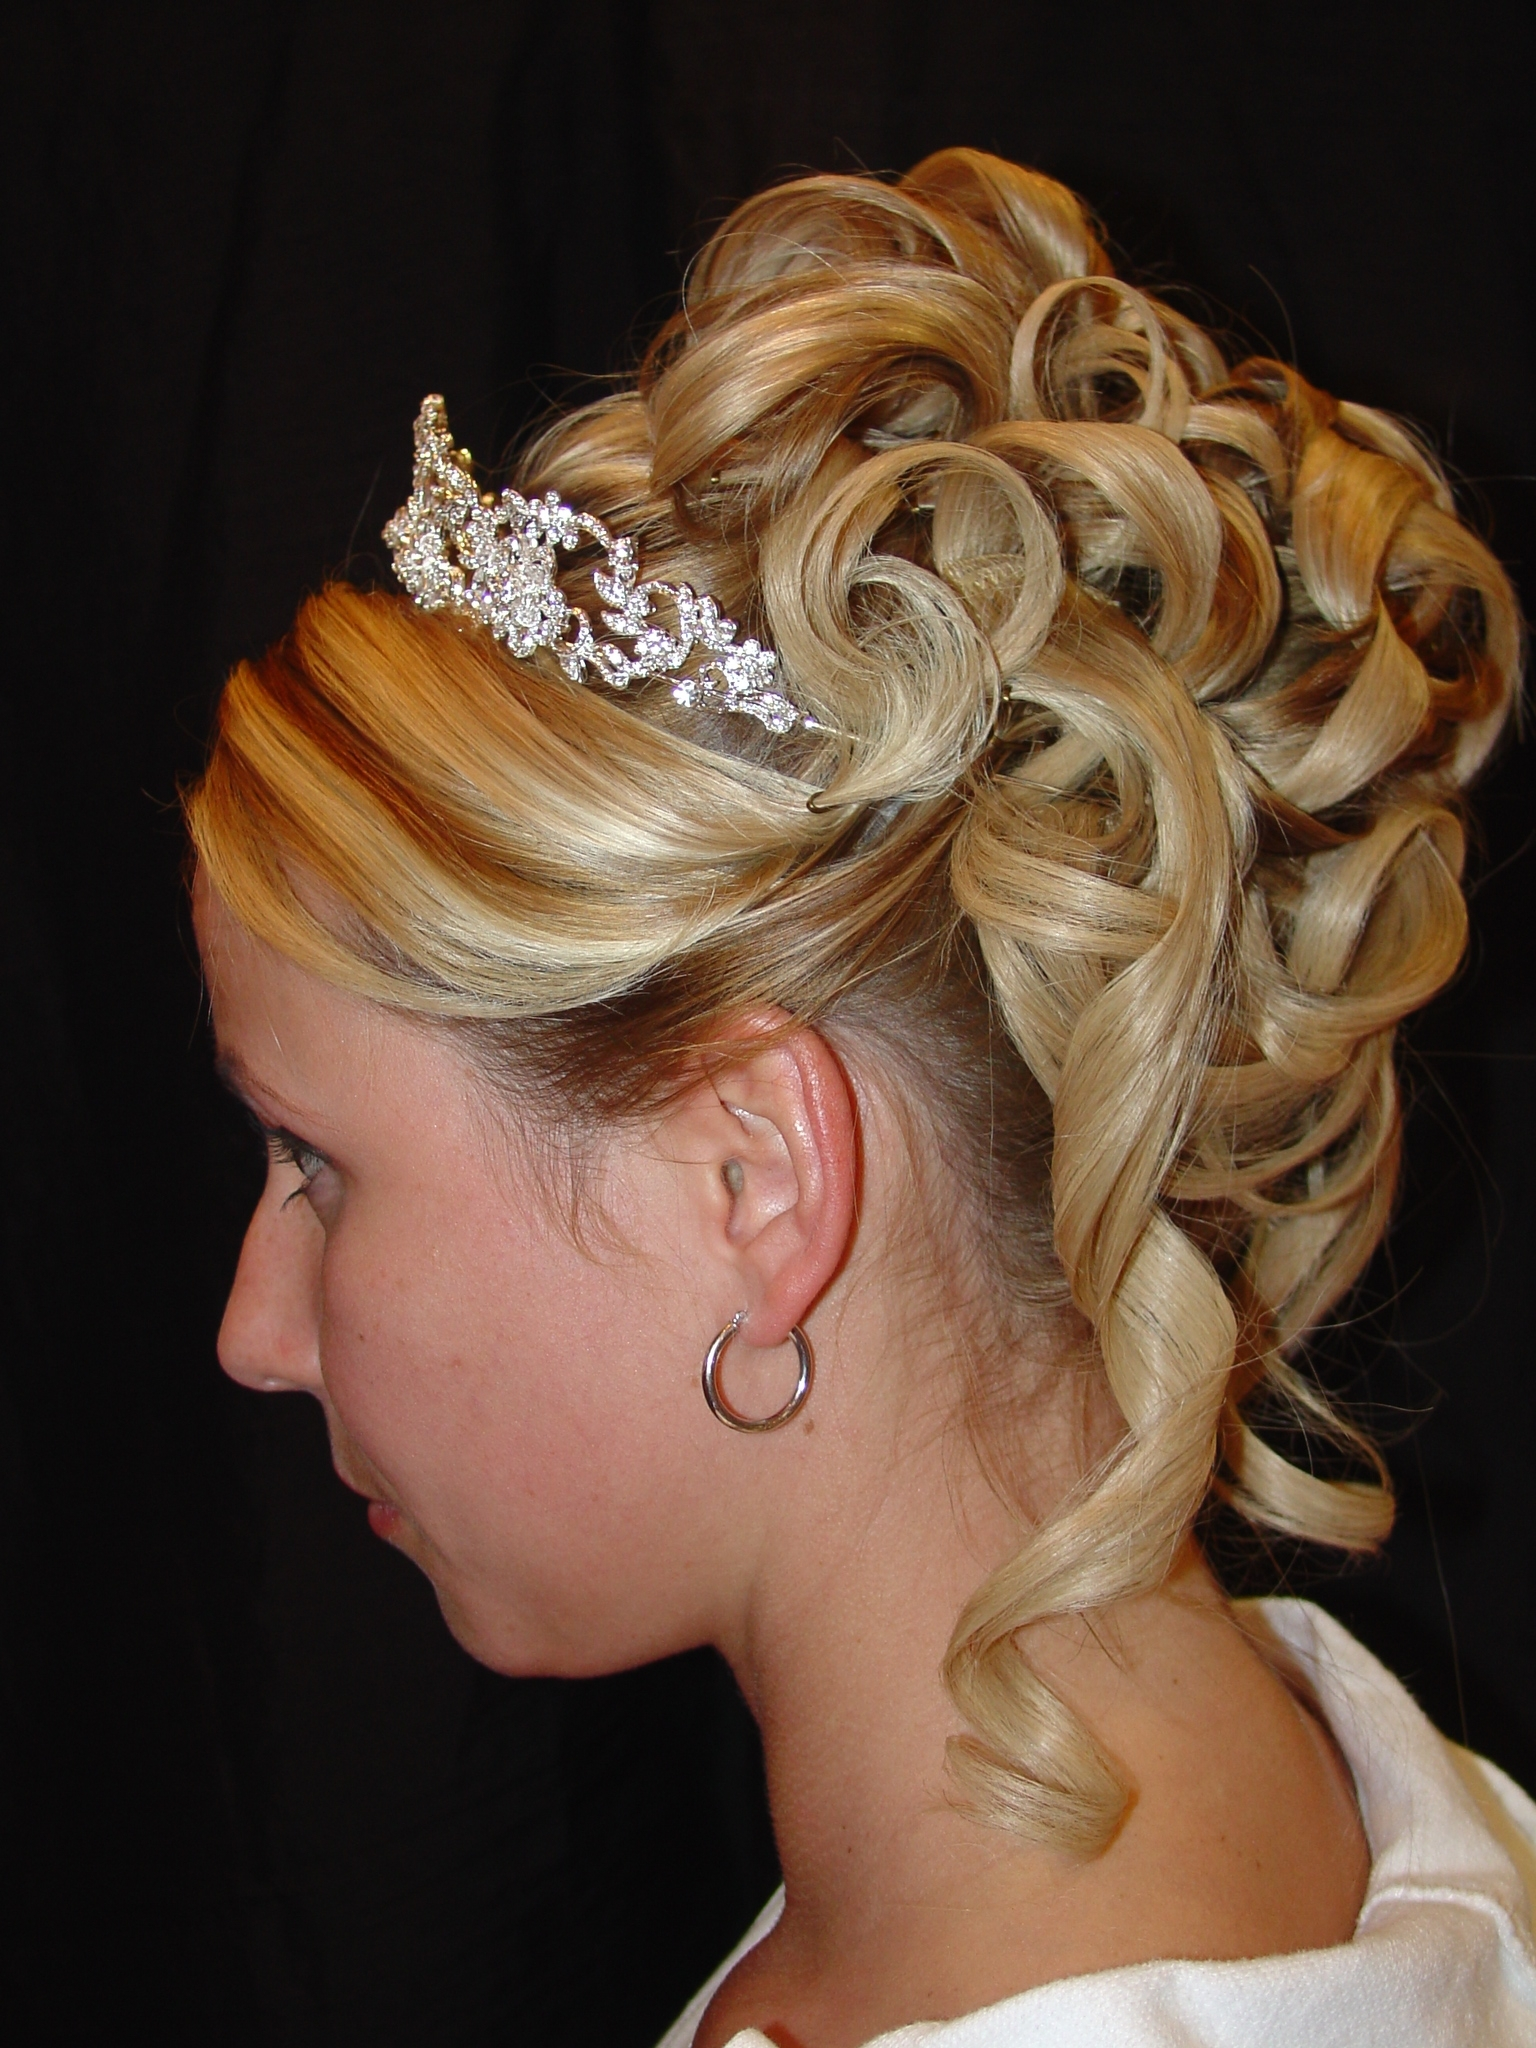 Fashionable Classic Wedding Hairstyles For Medium Length Hair With Regard To Classic Updos For Medium Hair – Hairstyle For Women & Man (View 7 of 15)